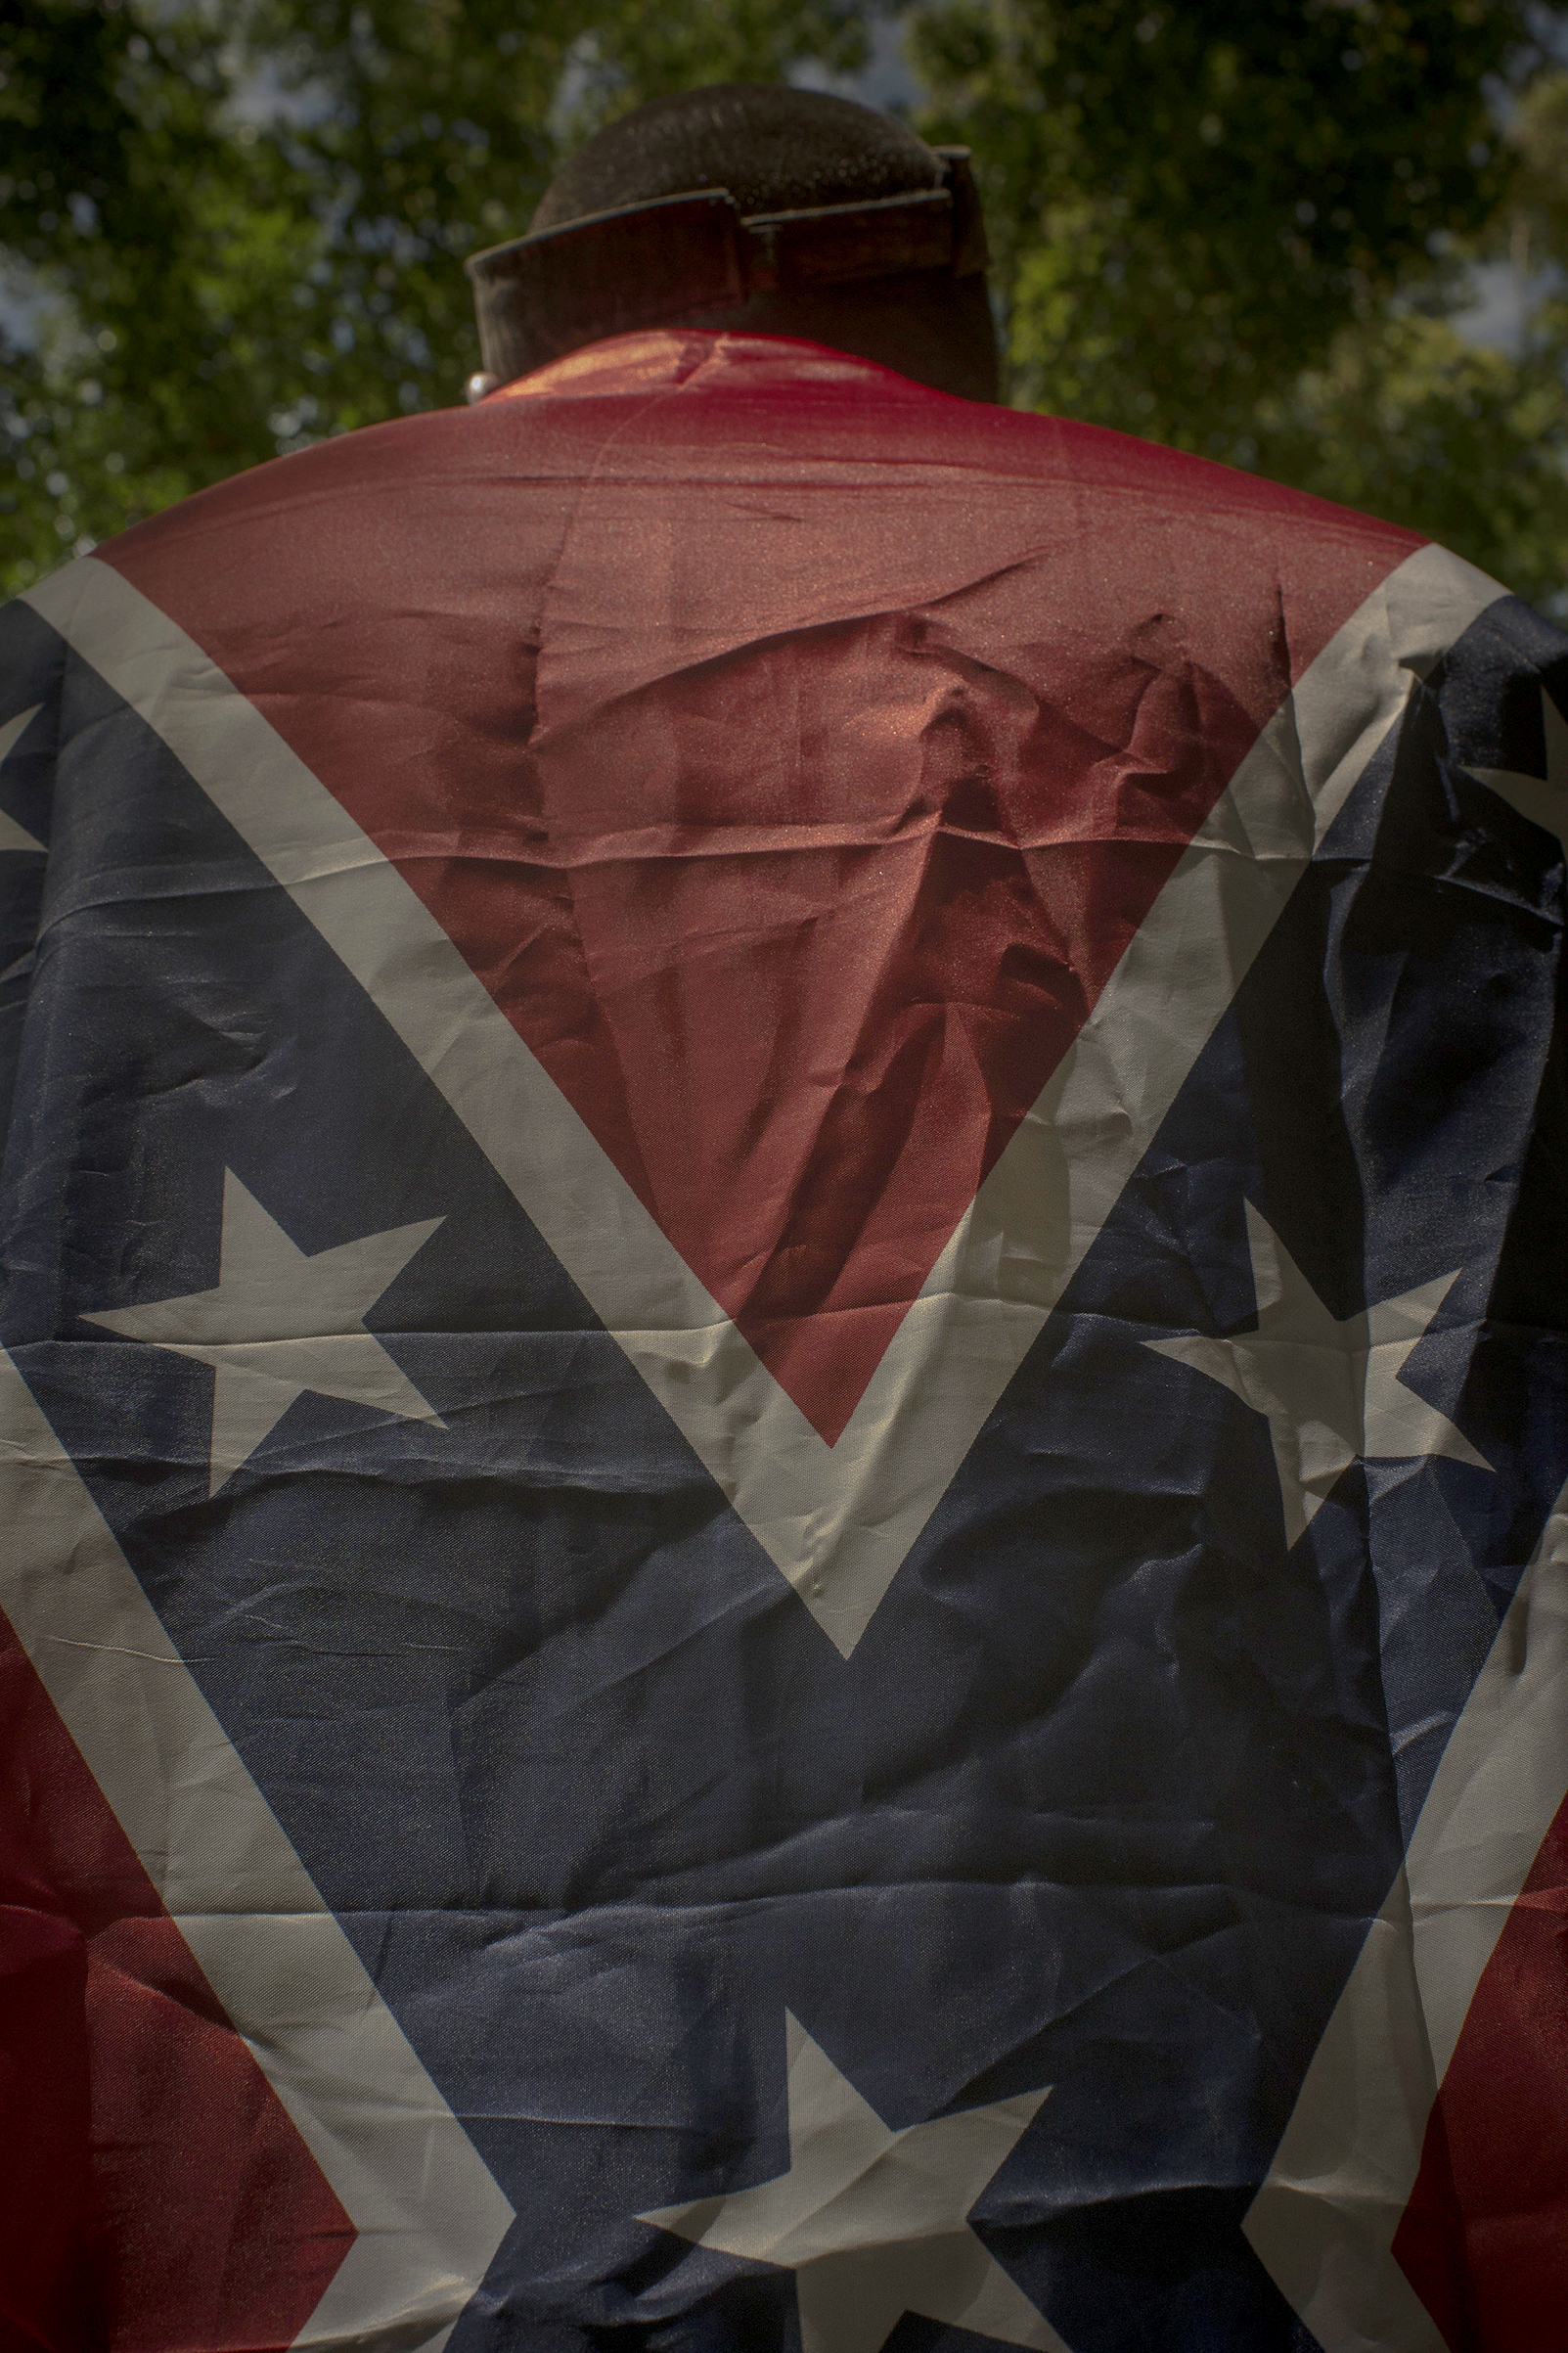 A Unite the Right protester drapes himself in a Confederate flag during a KKK rally in Charlottesville, Va., on July 8, 2017.